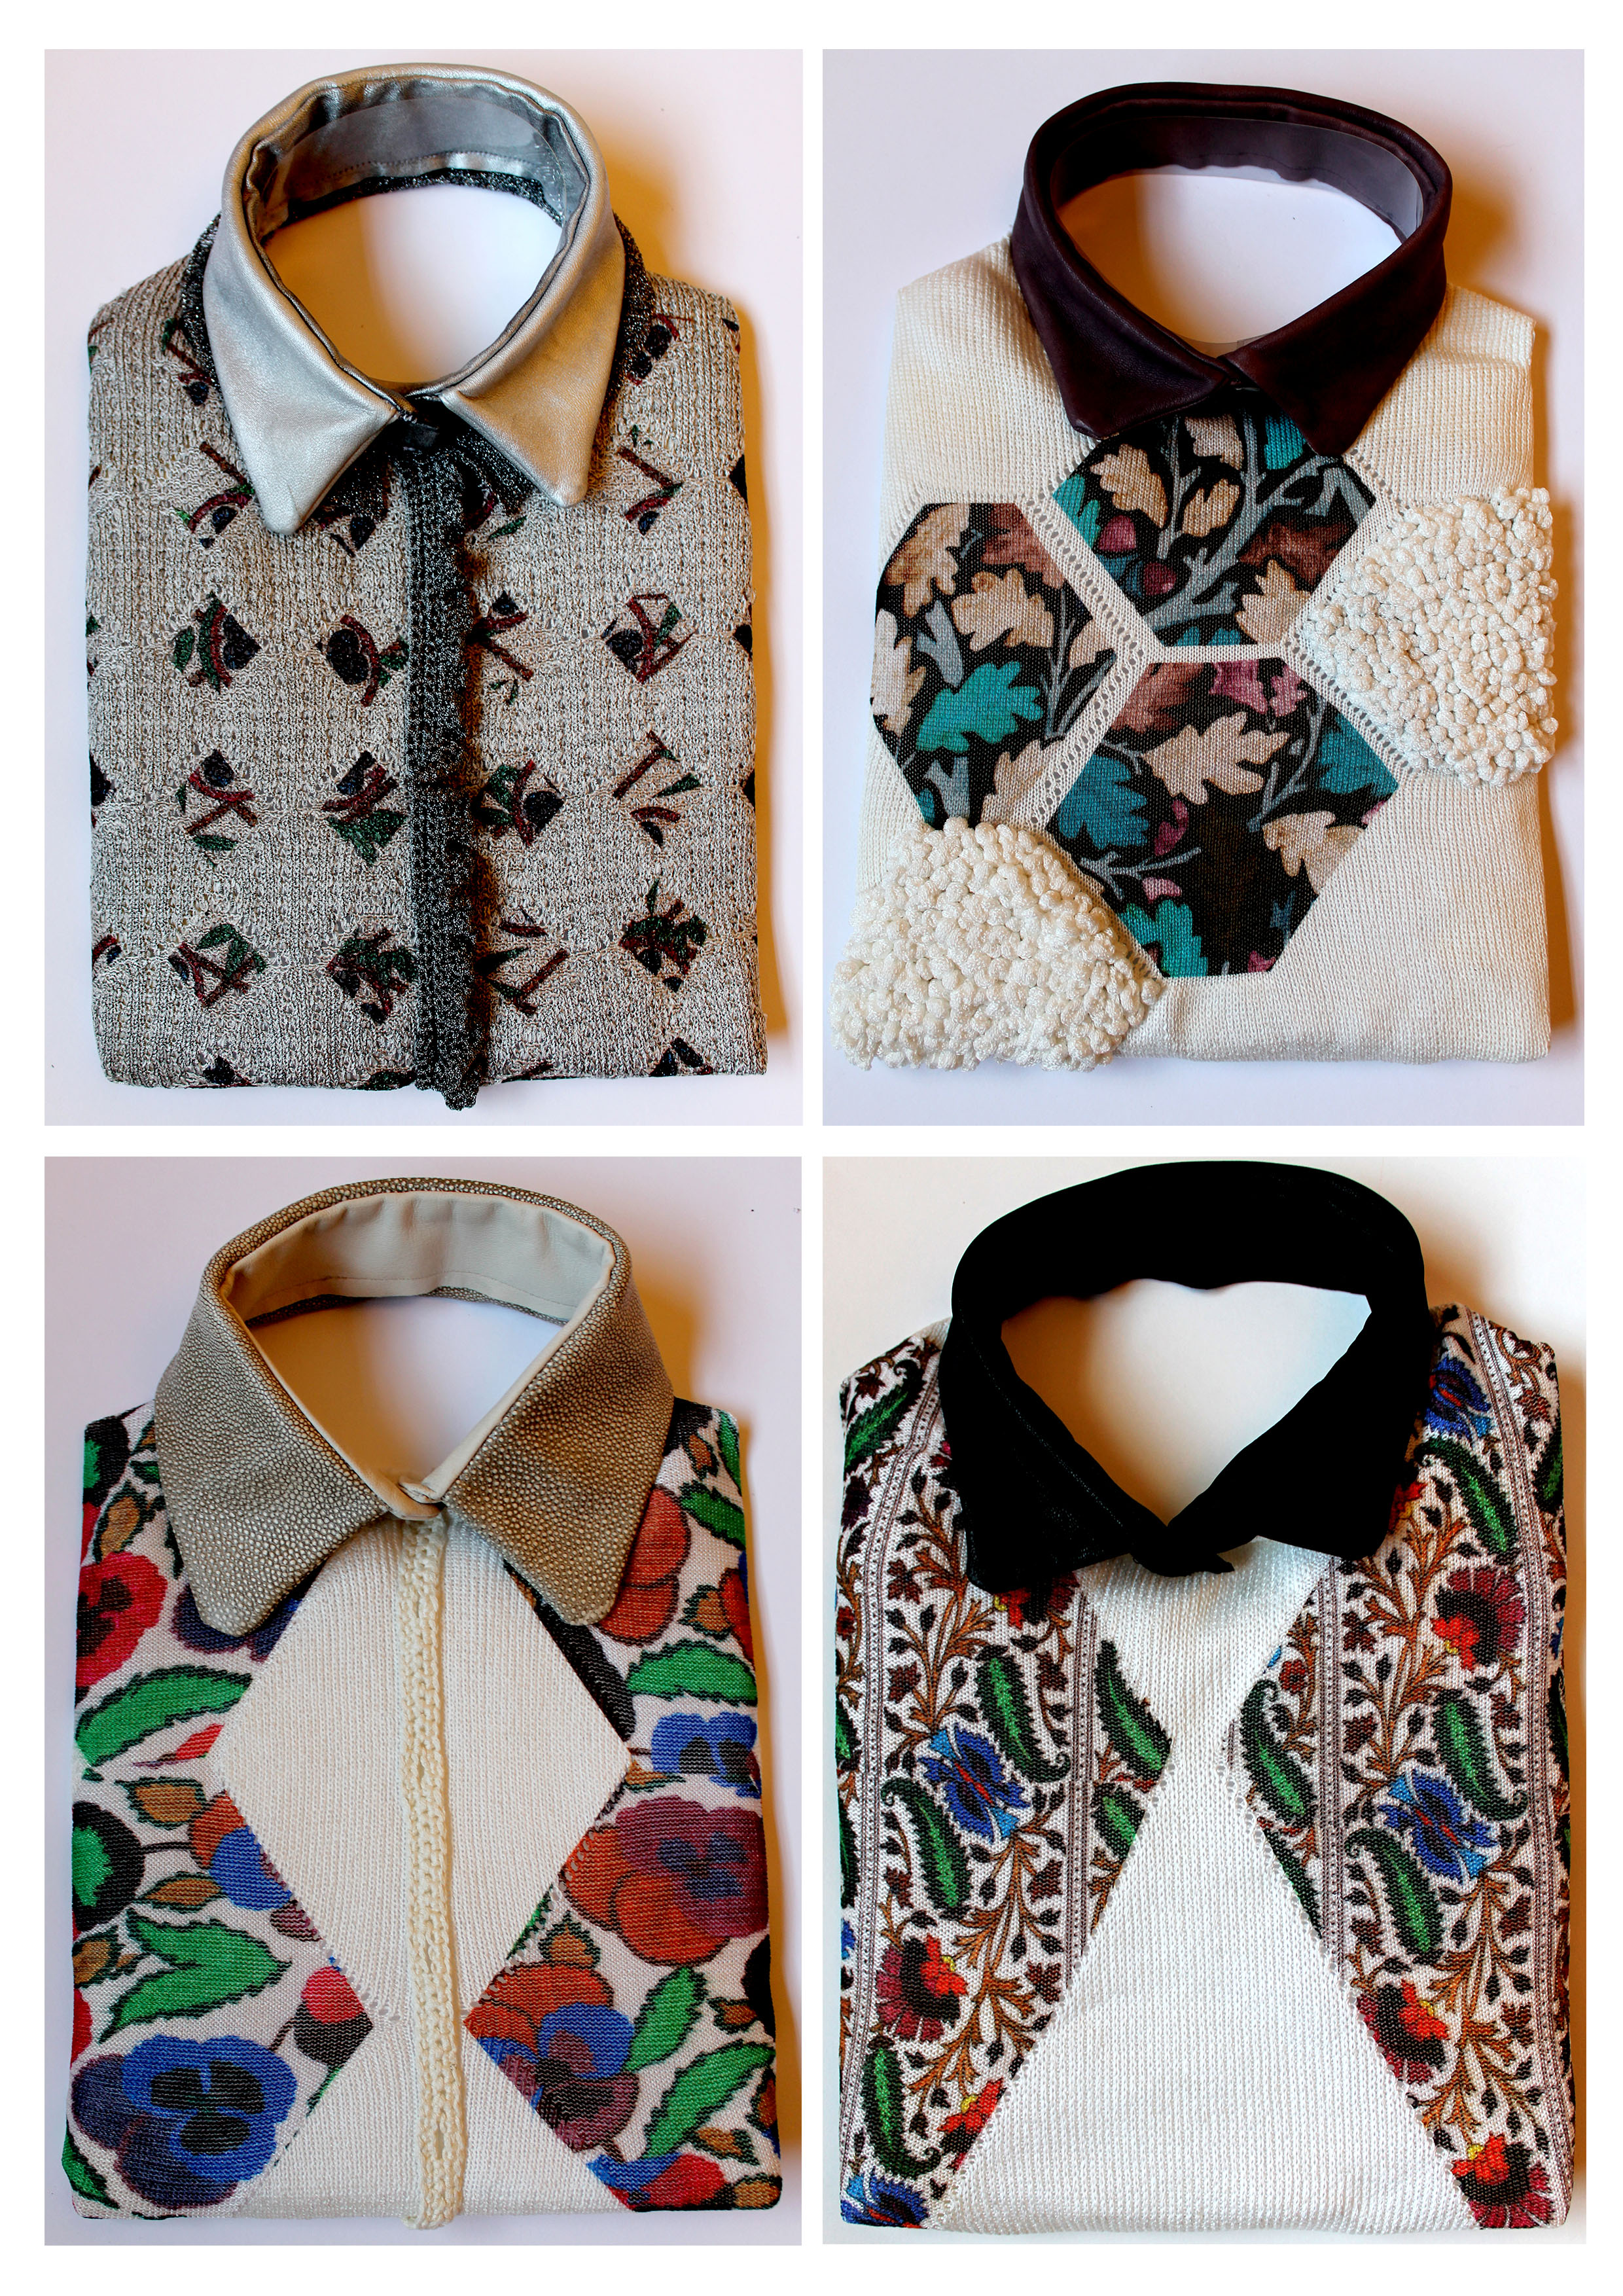 Knitted shirts